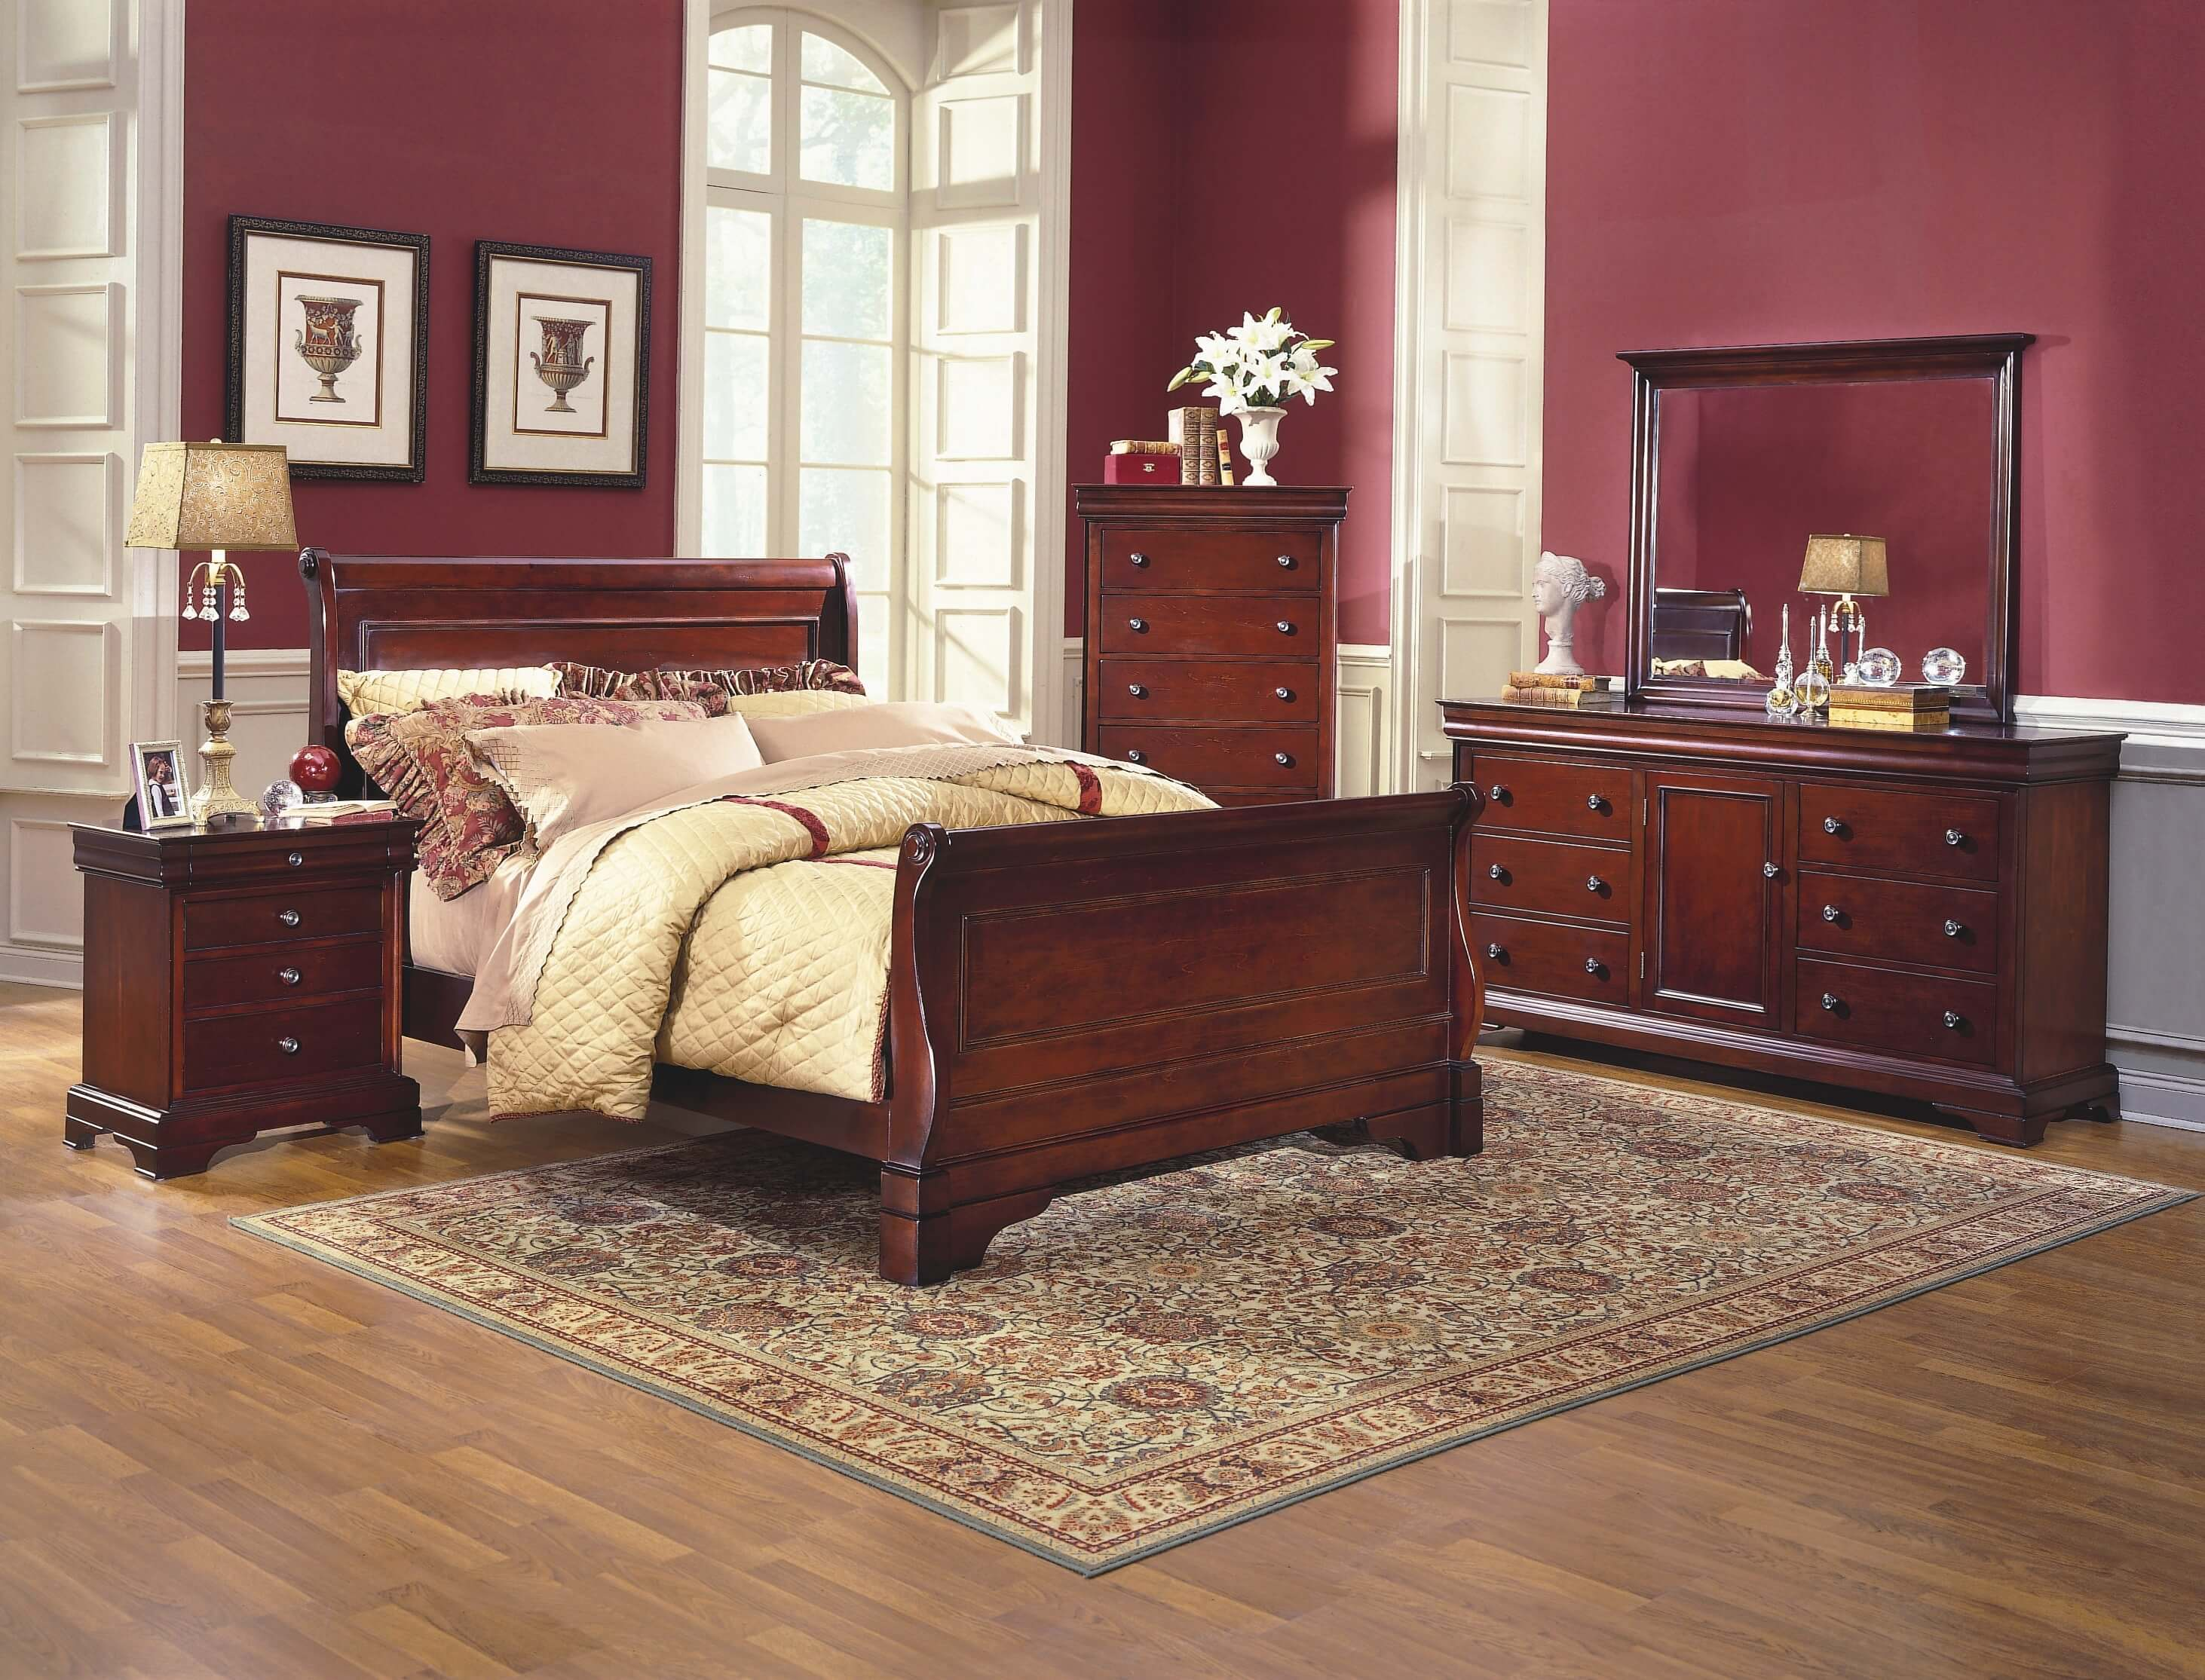 New Bedroom Set Versailles Bedroom Set By New Classic Furniture Discontinued